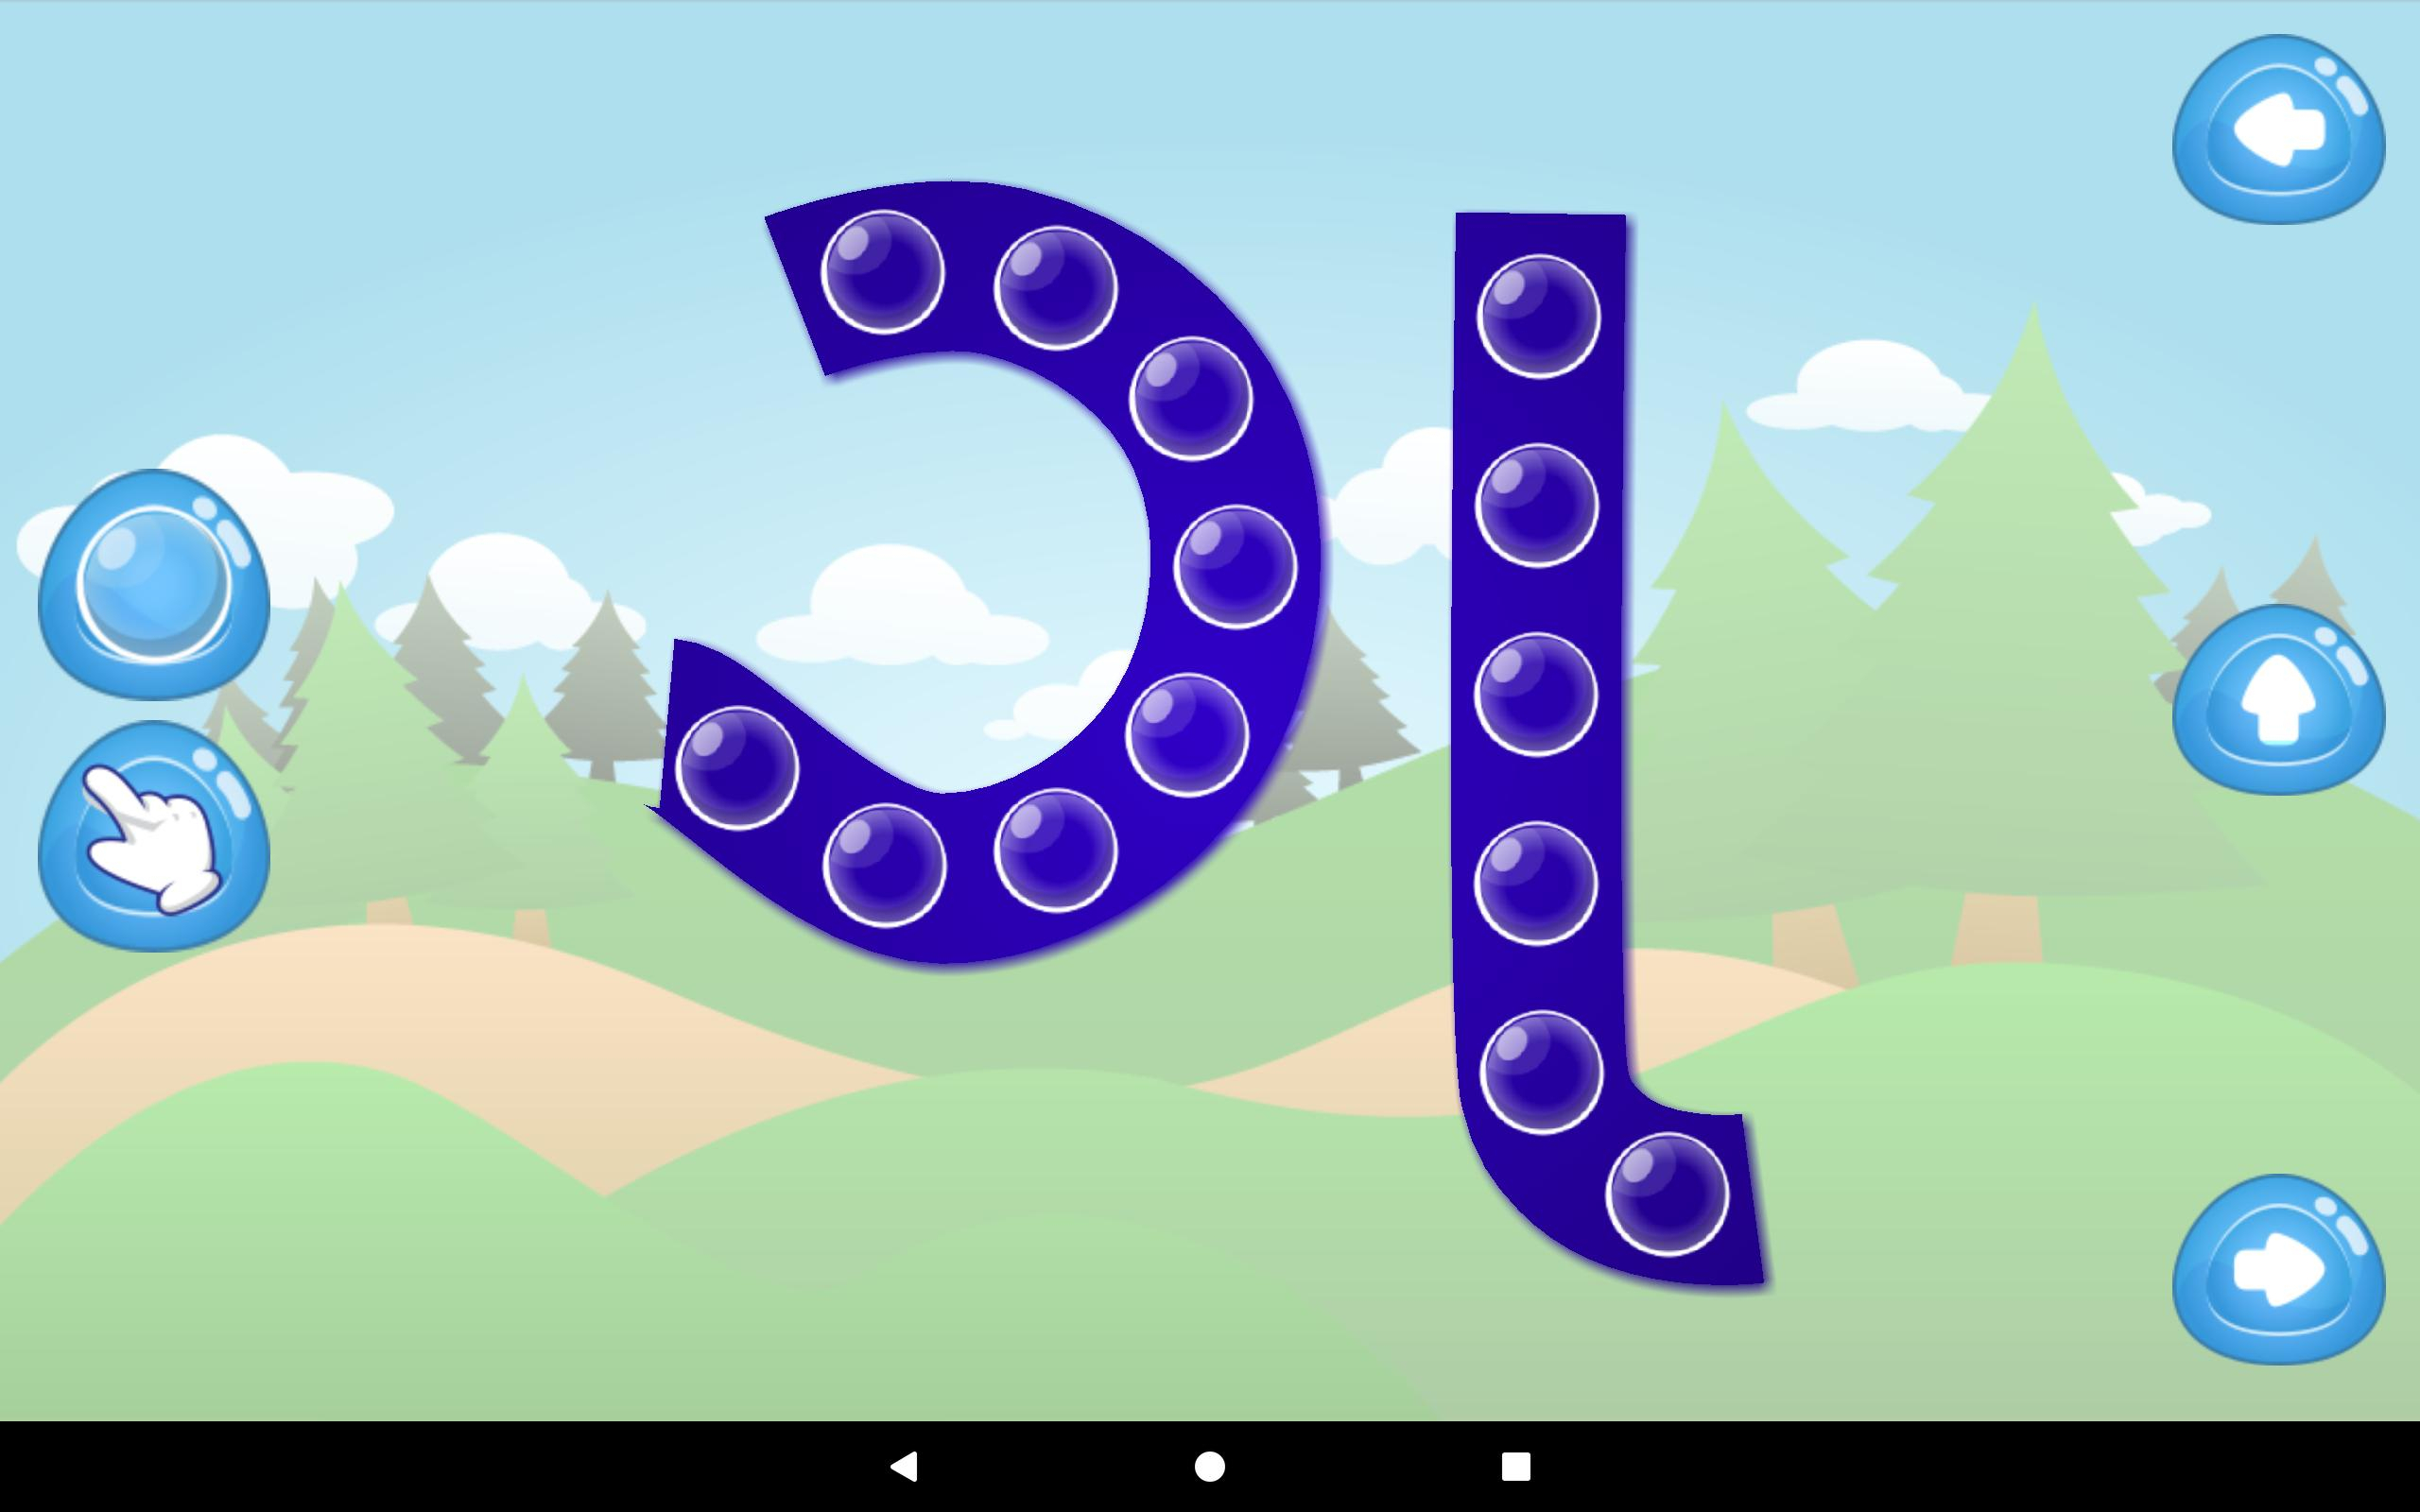 Write Gujarati Letters For Android - Apk Download with regard to Writing Practice Of Gujarati Letters By Tracing